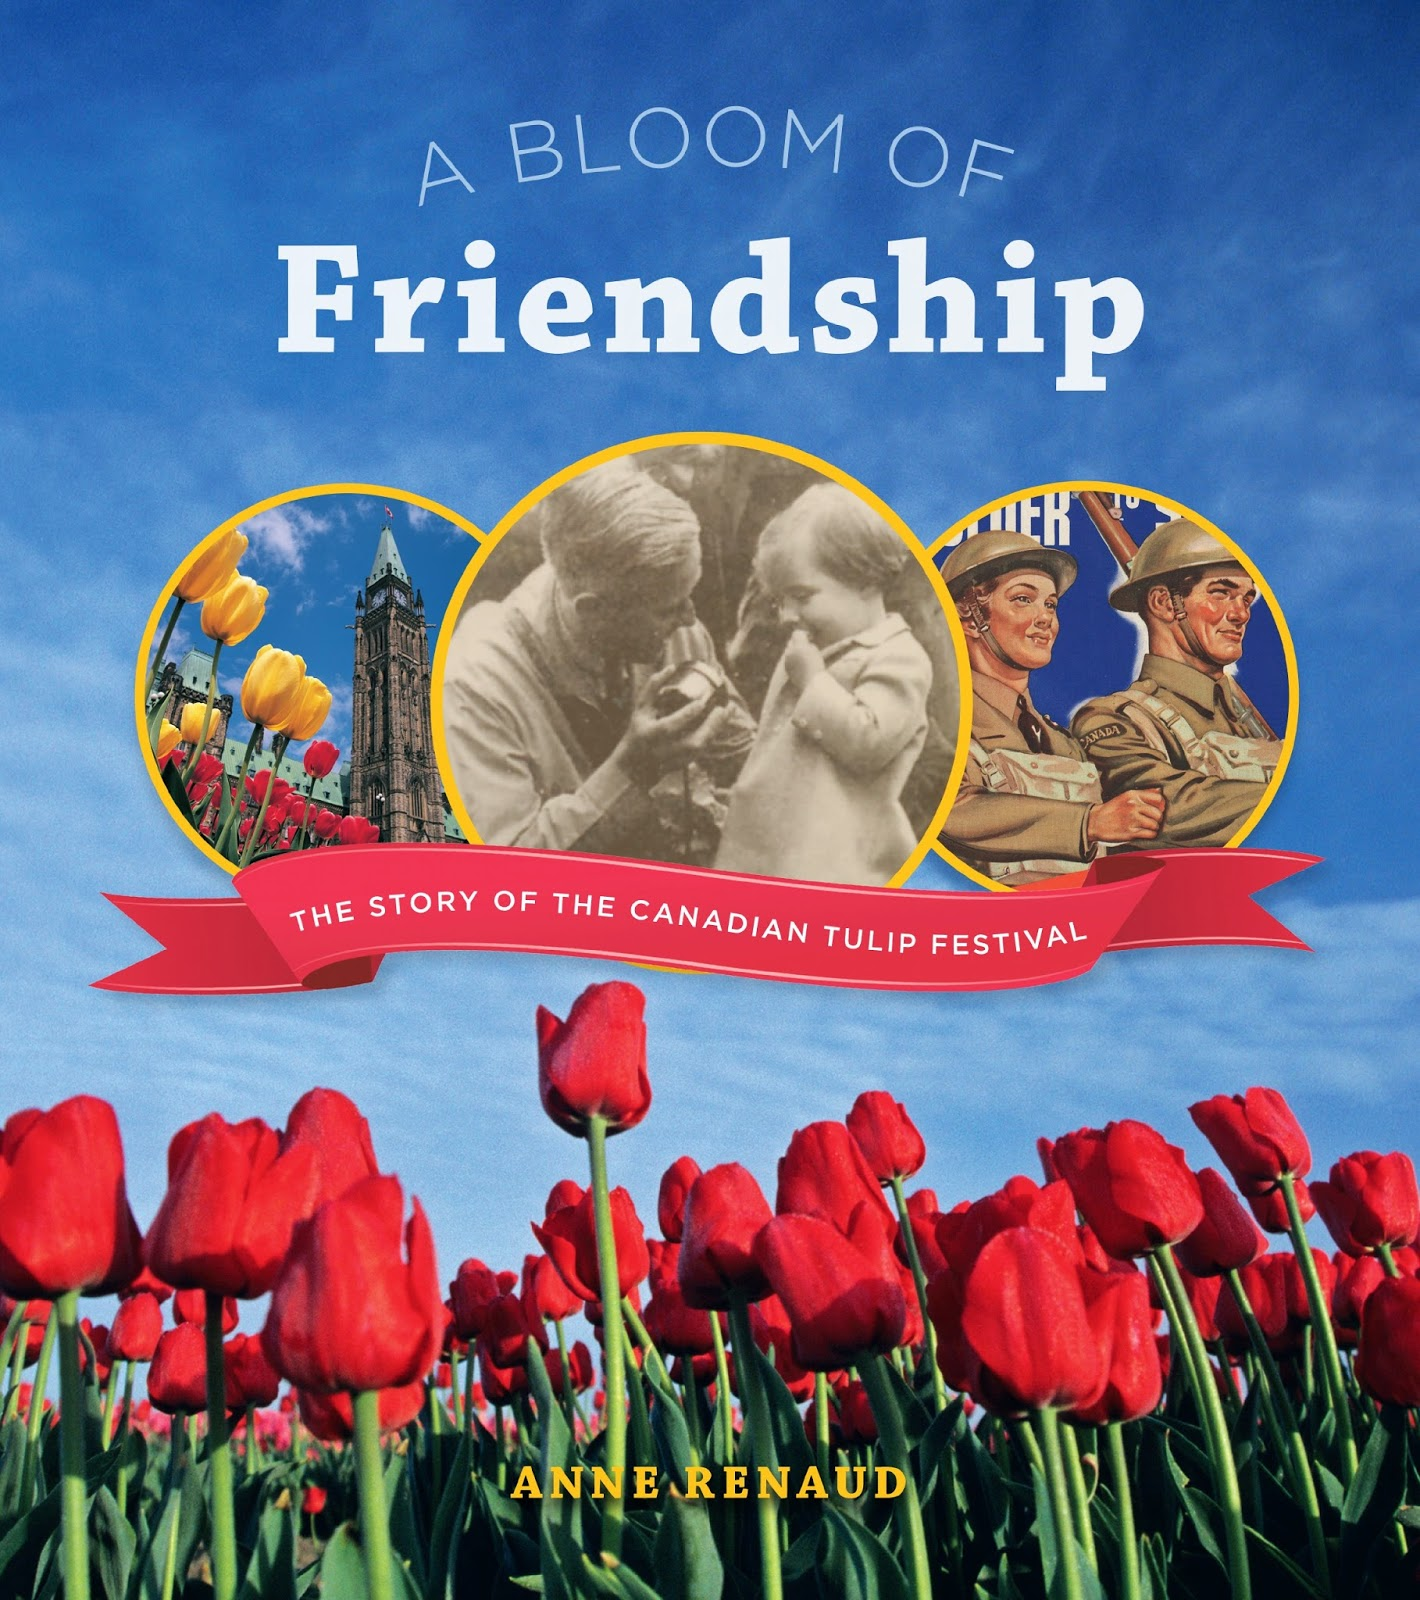 A Bloom of Friendship by Anne Renaud